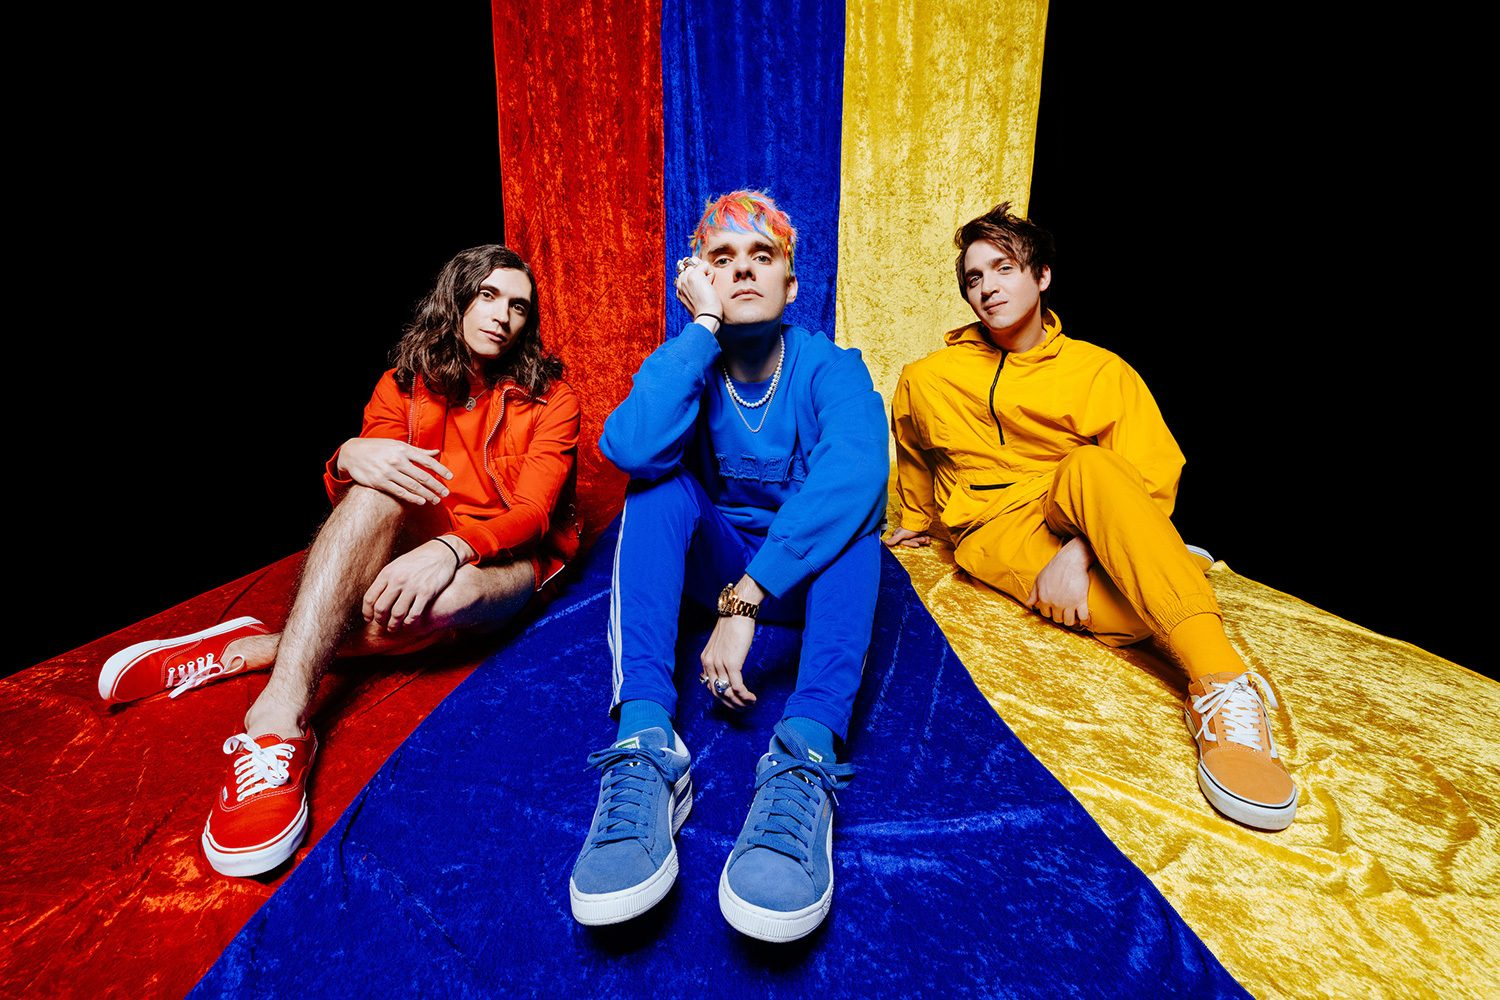 Waterparks have dropped a new album teaser, 'You'd Be Paranoid Too (If Everyone Was Out To Get You)'